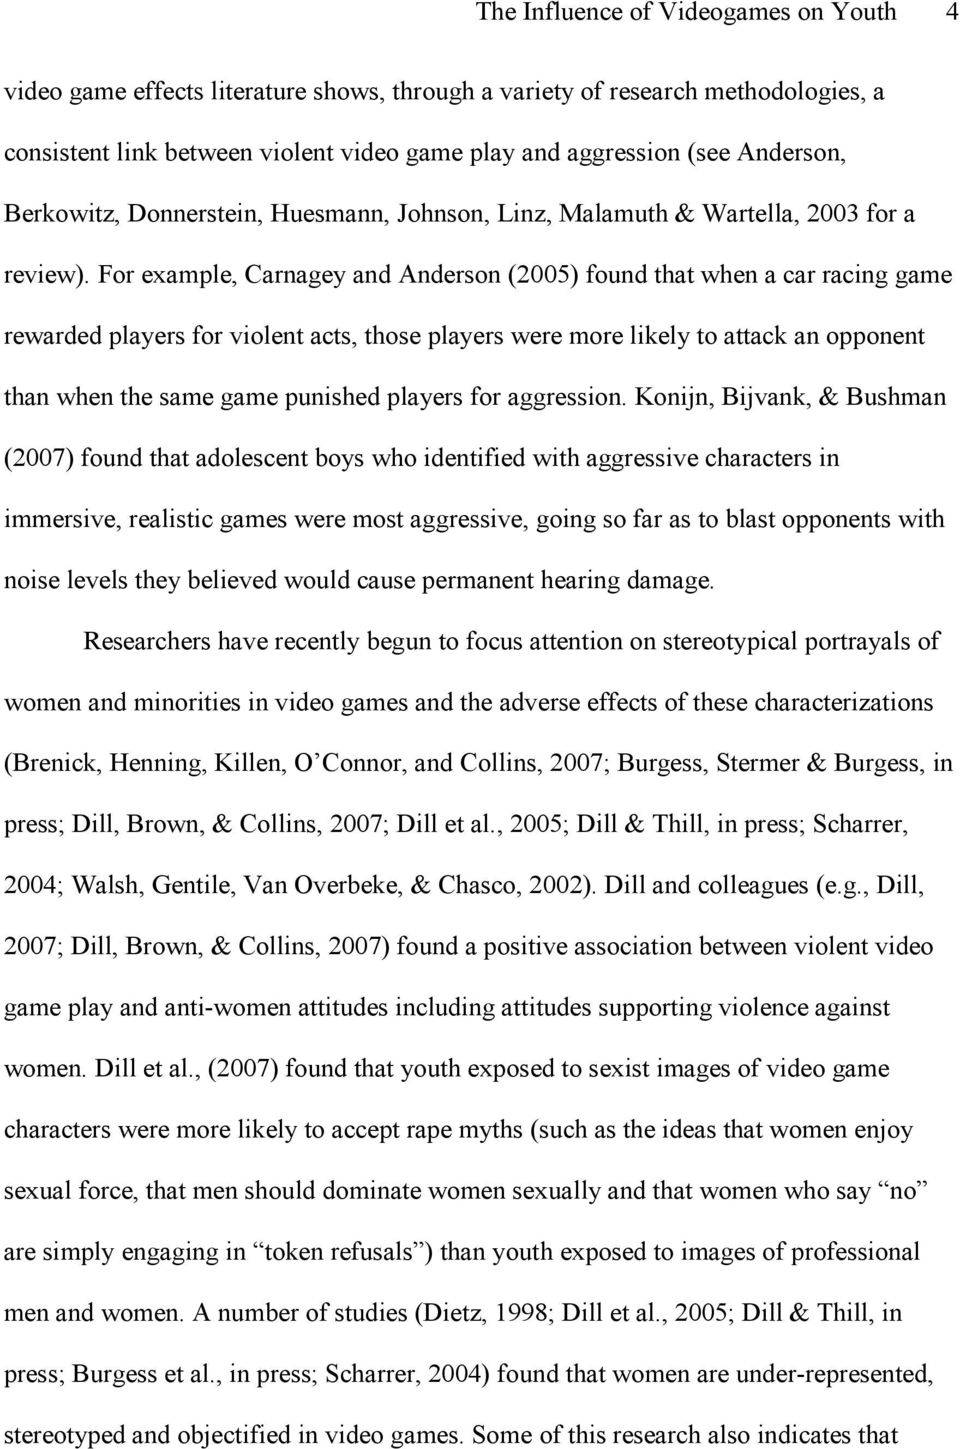 For example, Carnagey and Anderson (2005) found that when a car racing game rewarded players for violent acts, those players were more likely to attack an opponent than when the same game punished